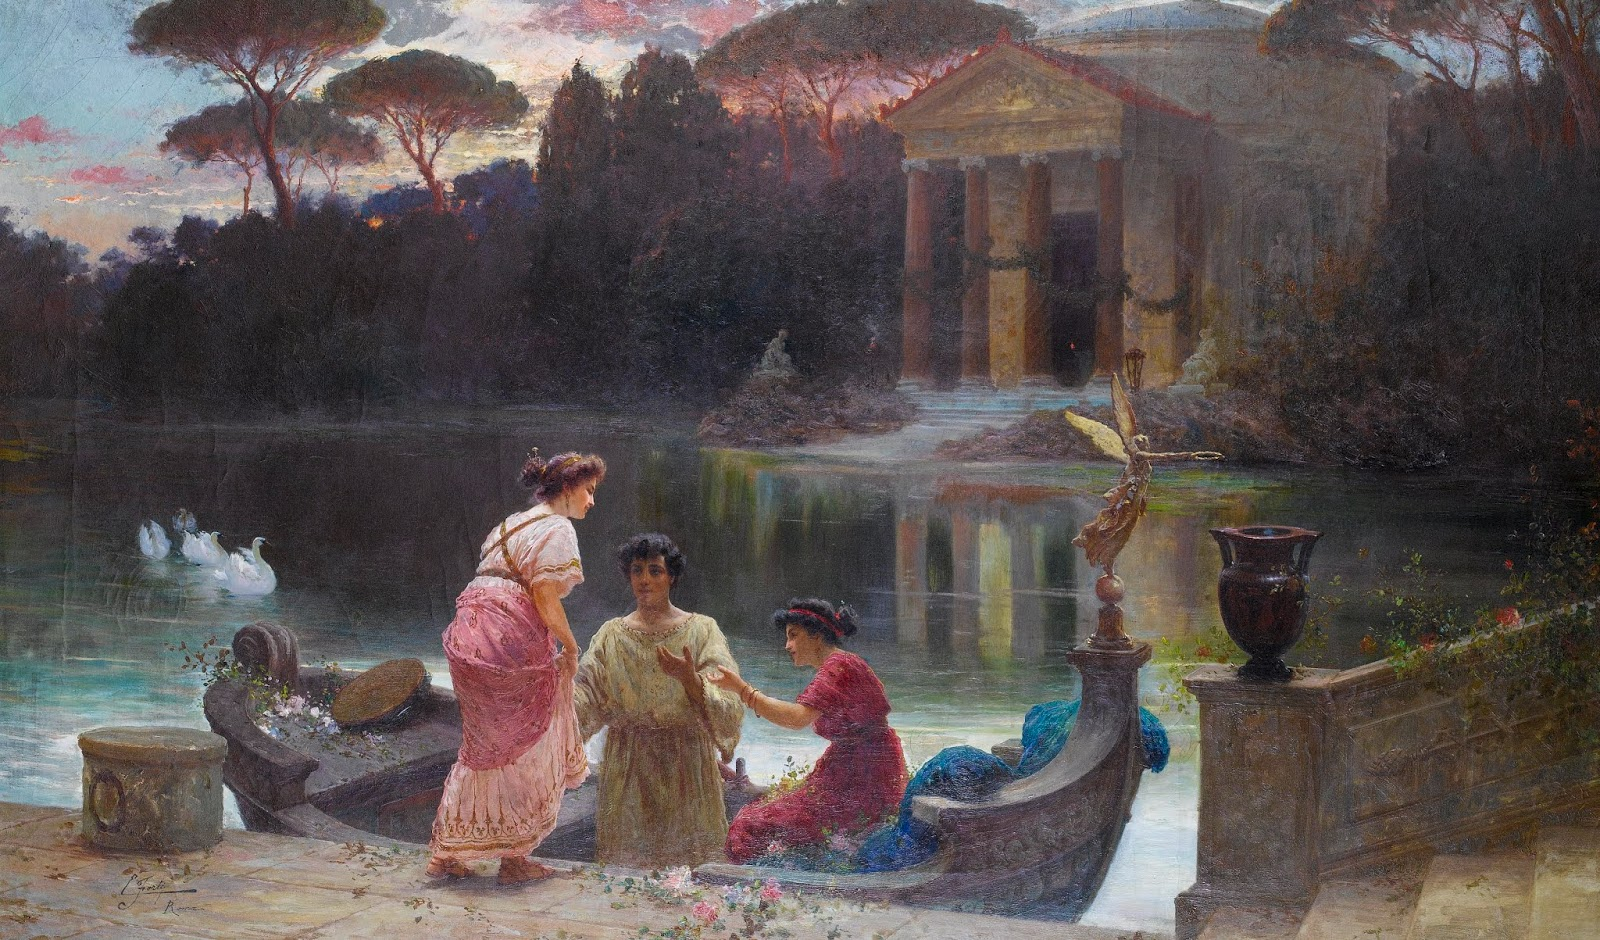 Paintings by Edouardo Ettore Forti (1850-1940)